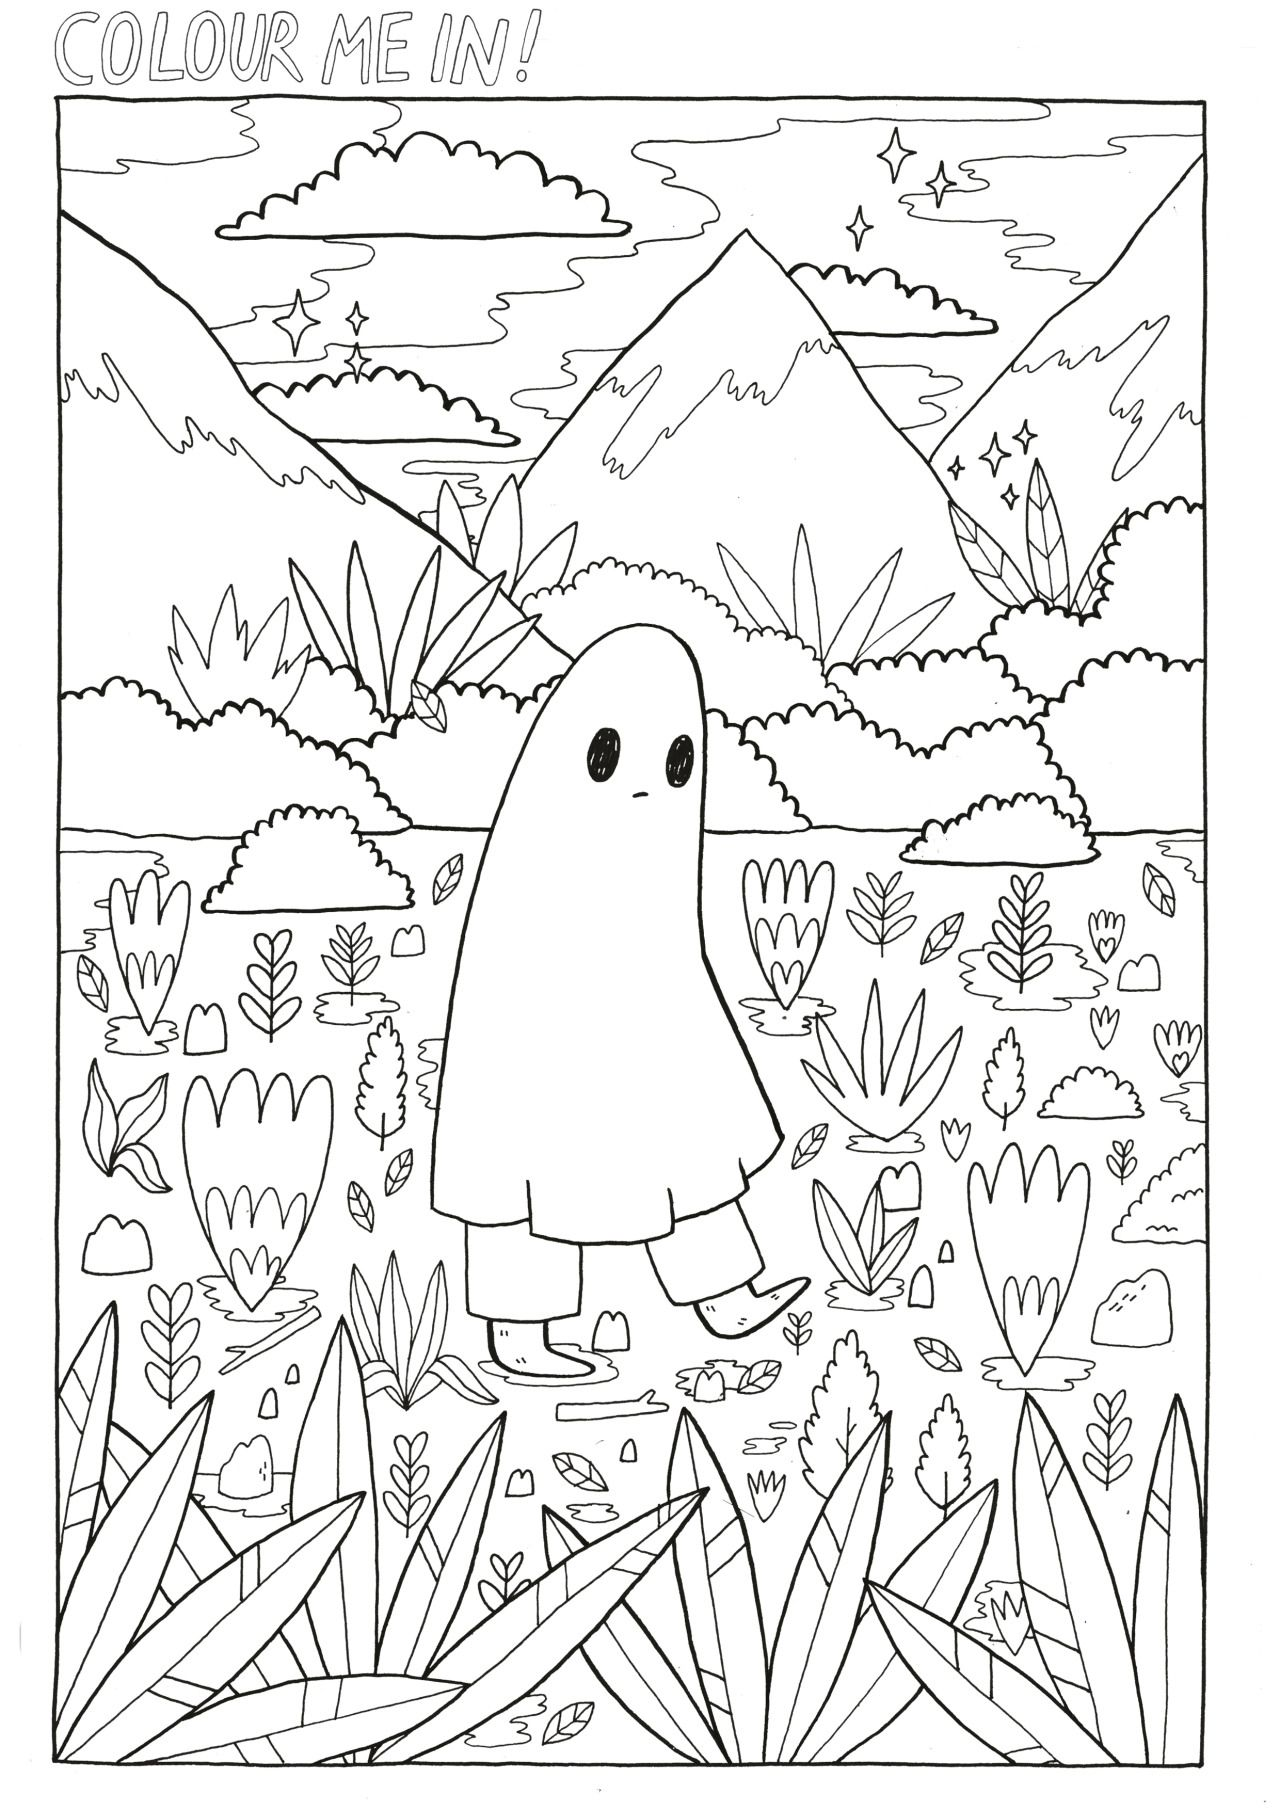 Aesthetic Coloring Pages Collection In 2020 Tumblr Coloring Pages Cartoon Coloring Pages Coloring Pages